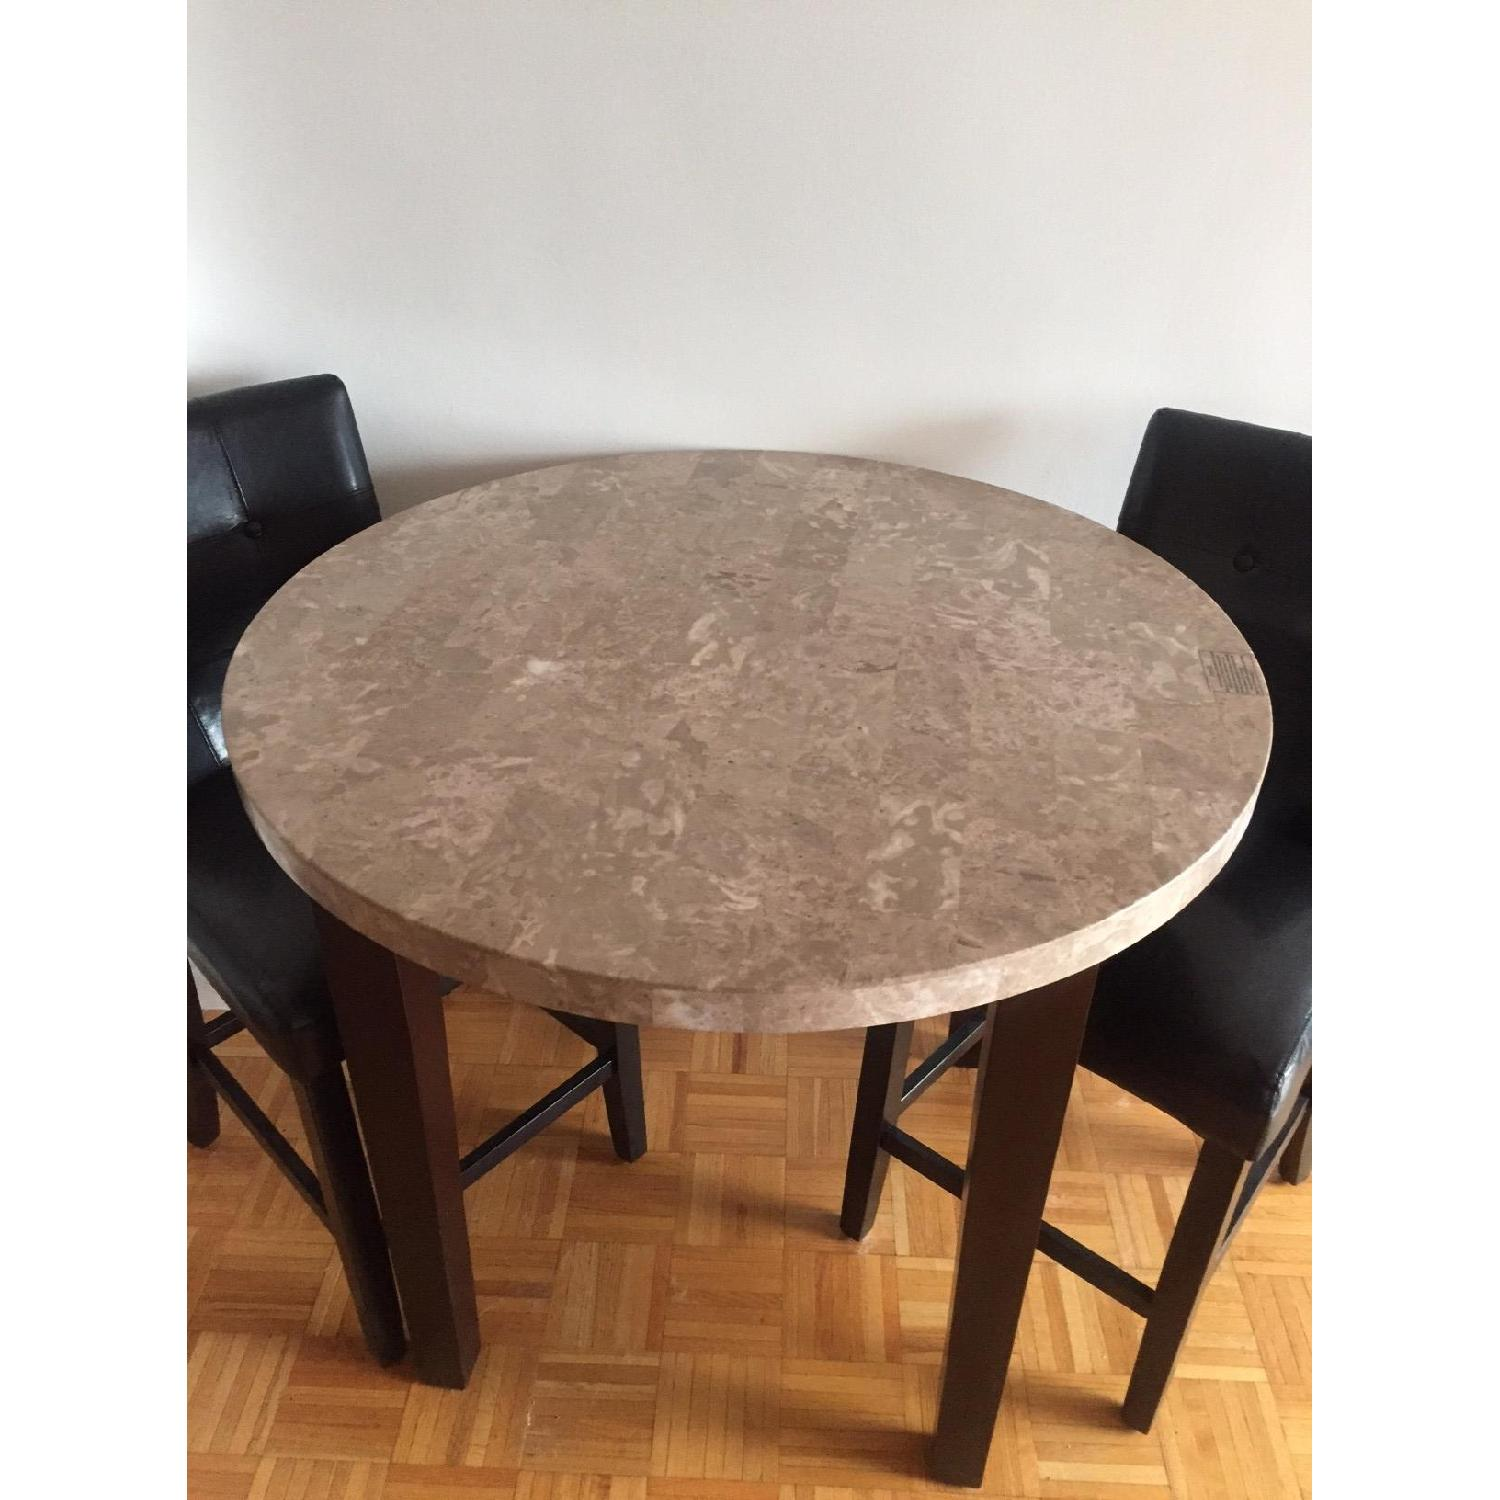 Harlem Furniture Inc Marble Table w/ 2 Black Leather Chairs-2